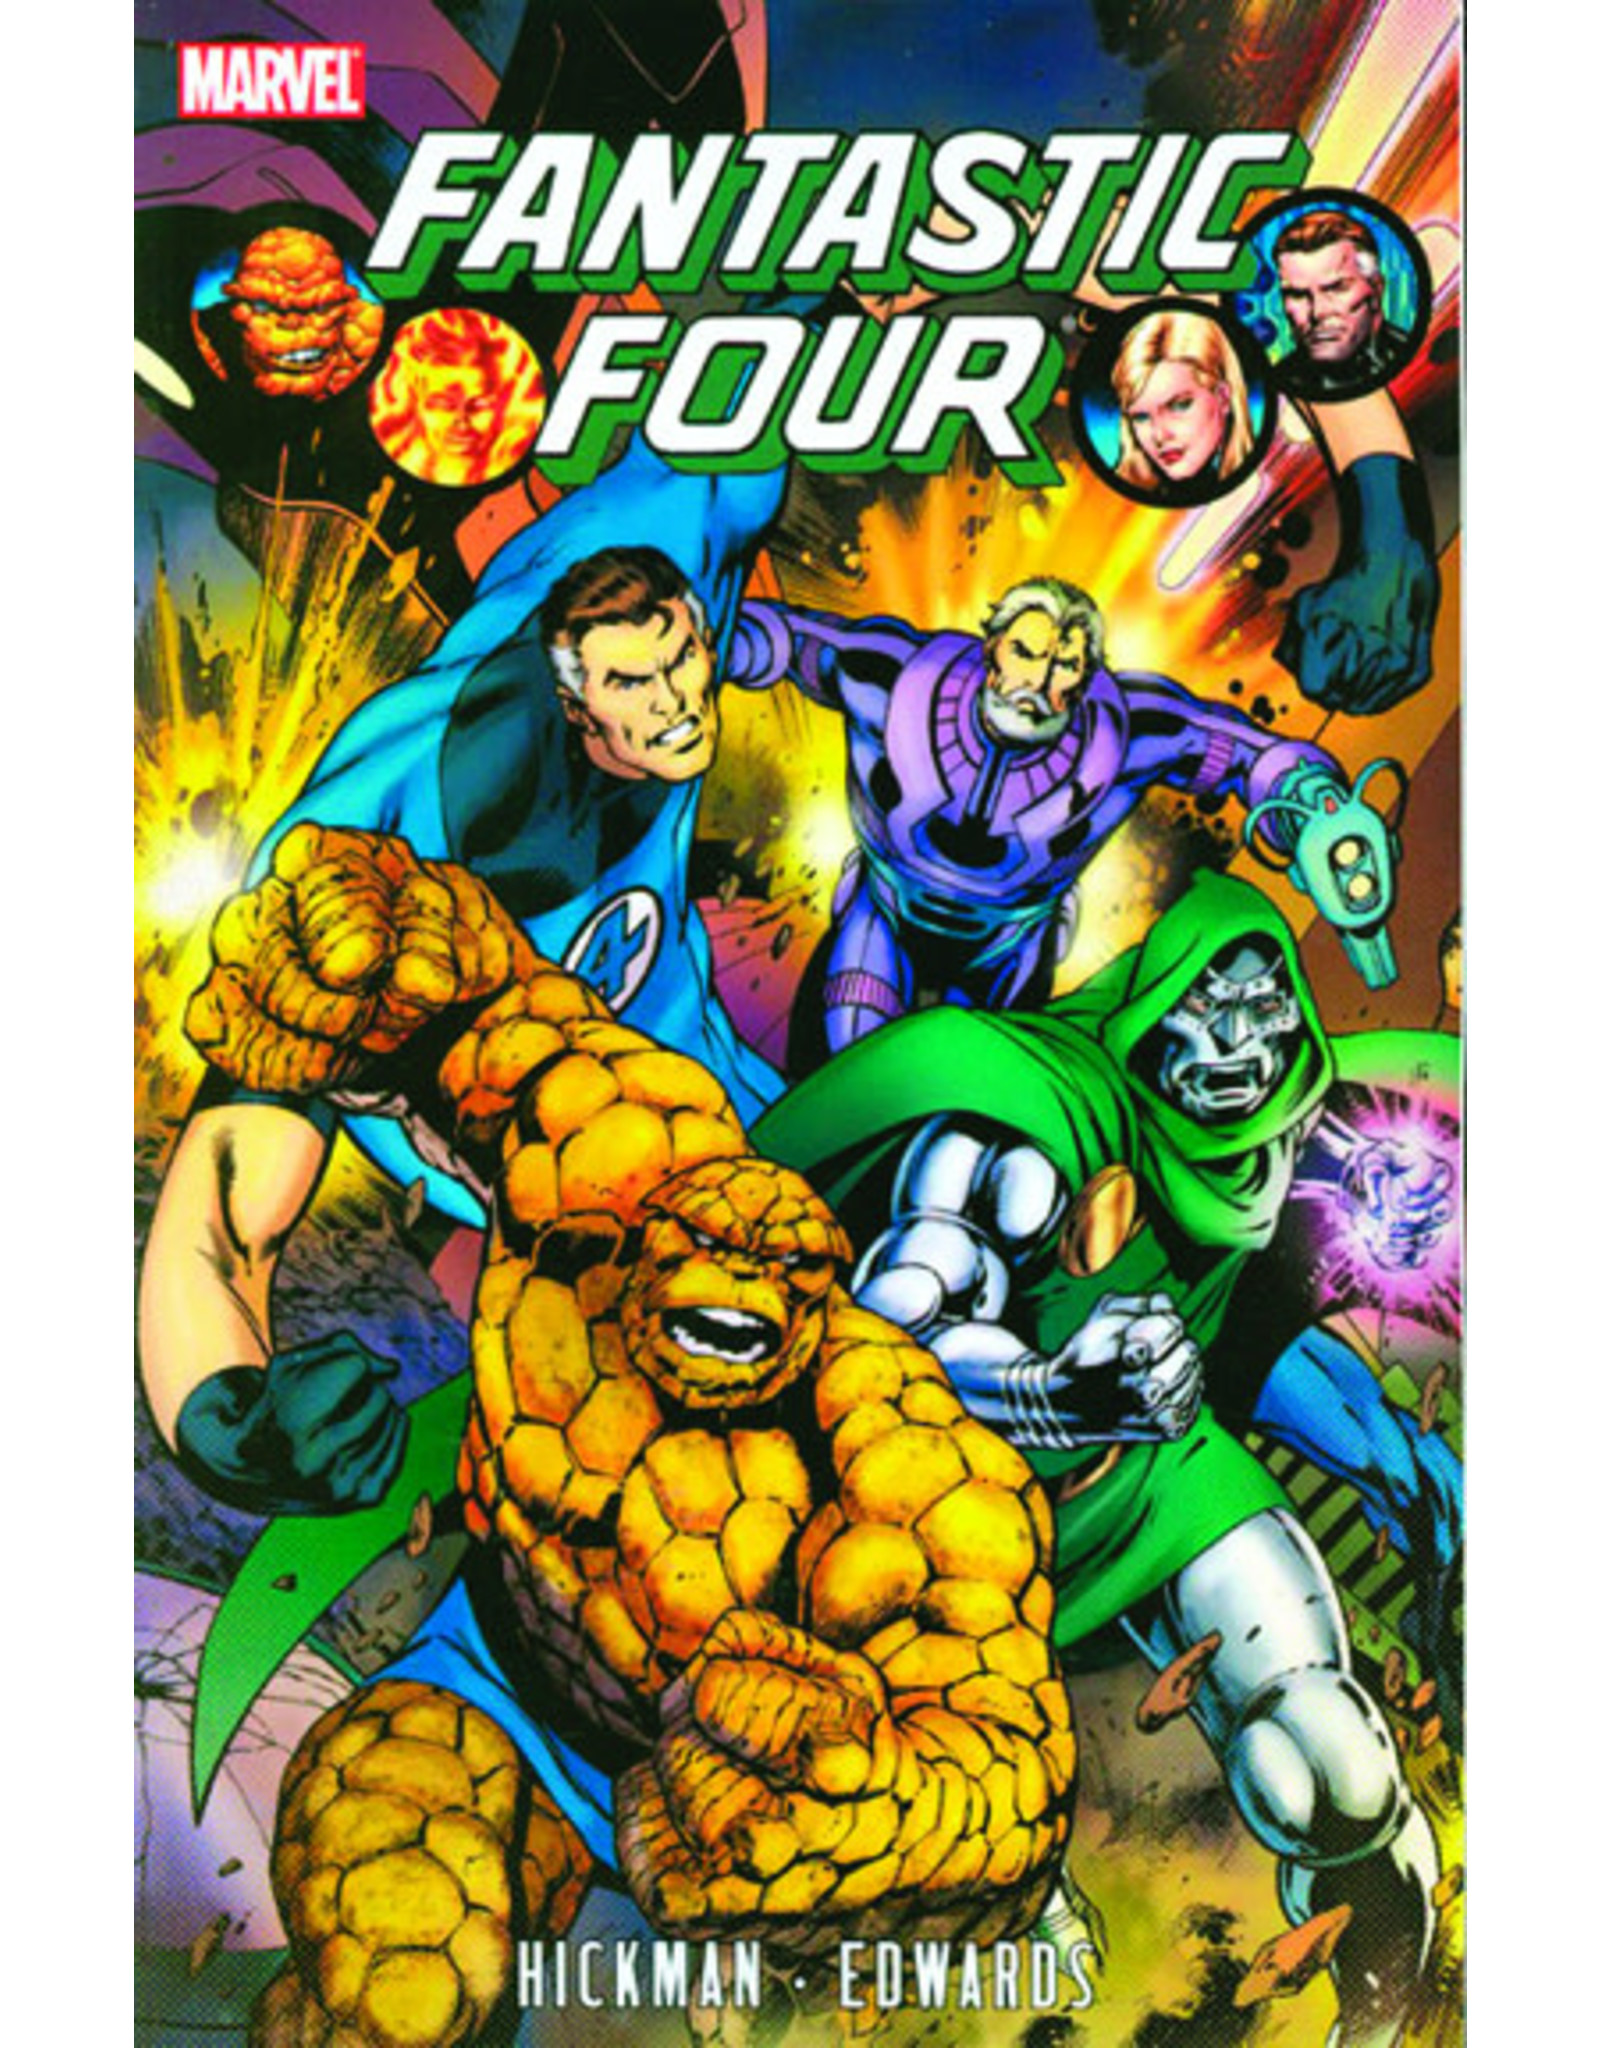 MARVEL COMICS FANTASTIC FOUR BY JONATHAN HICKMAN TP VOL 03